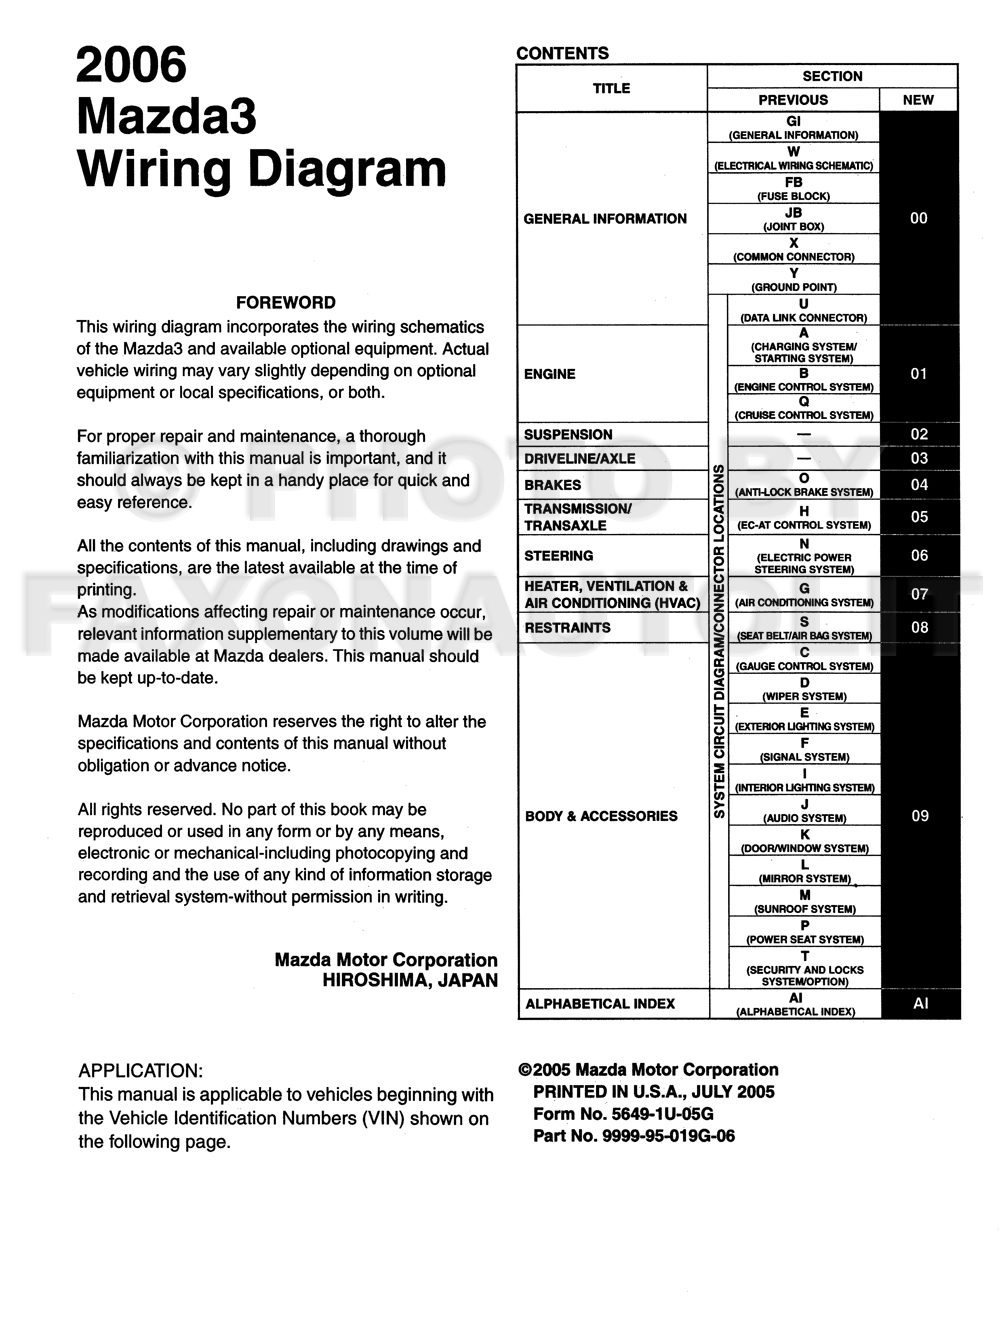 Mazda wiring diagram original